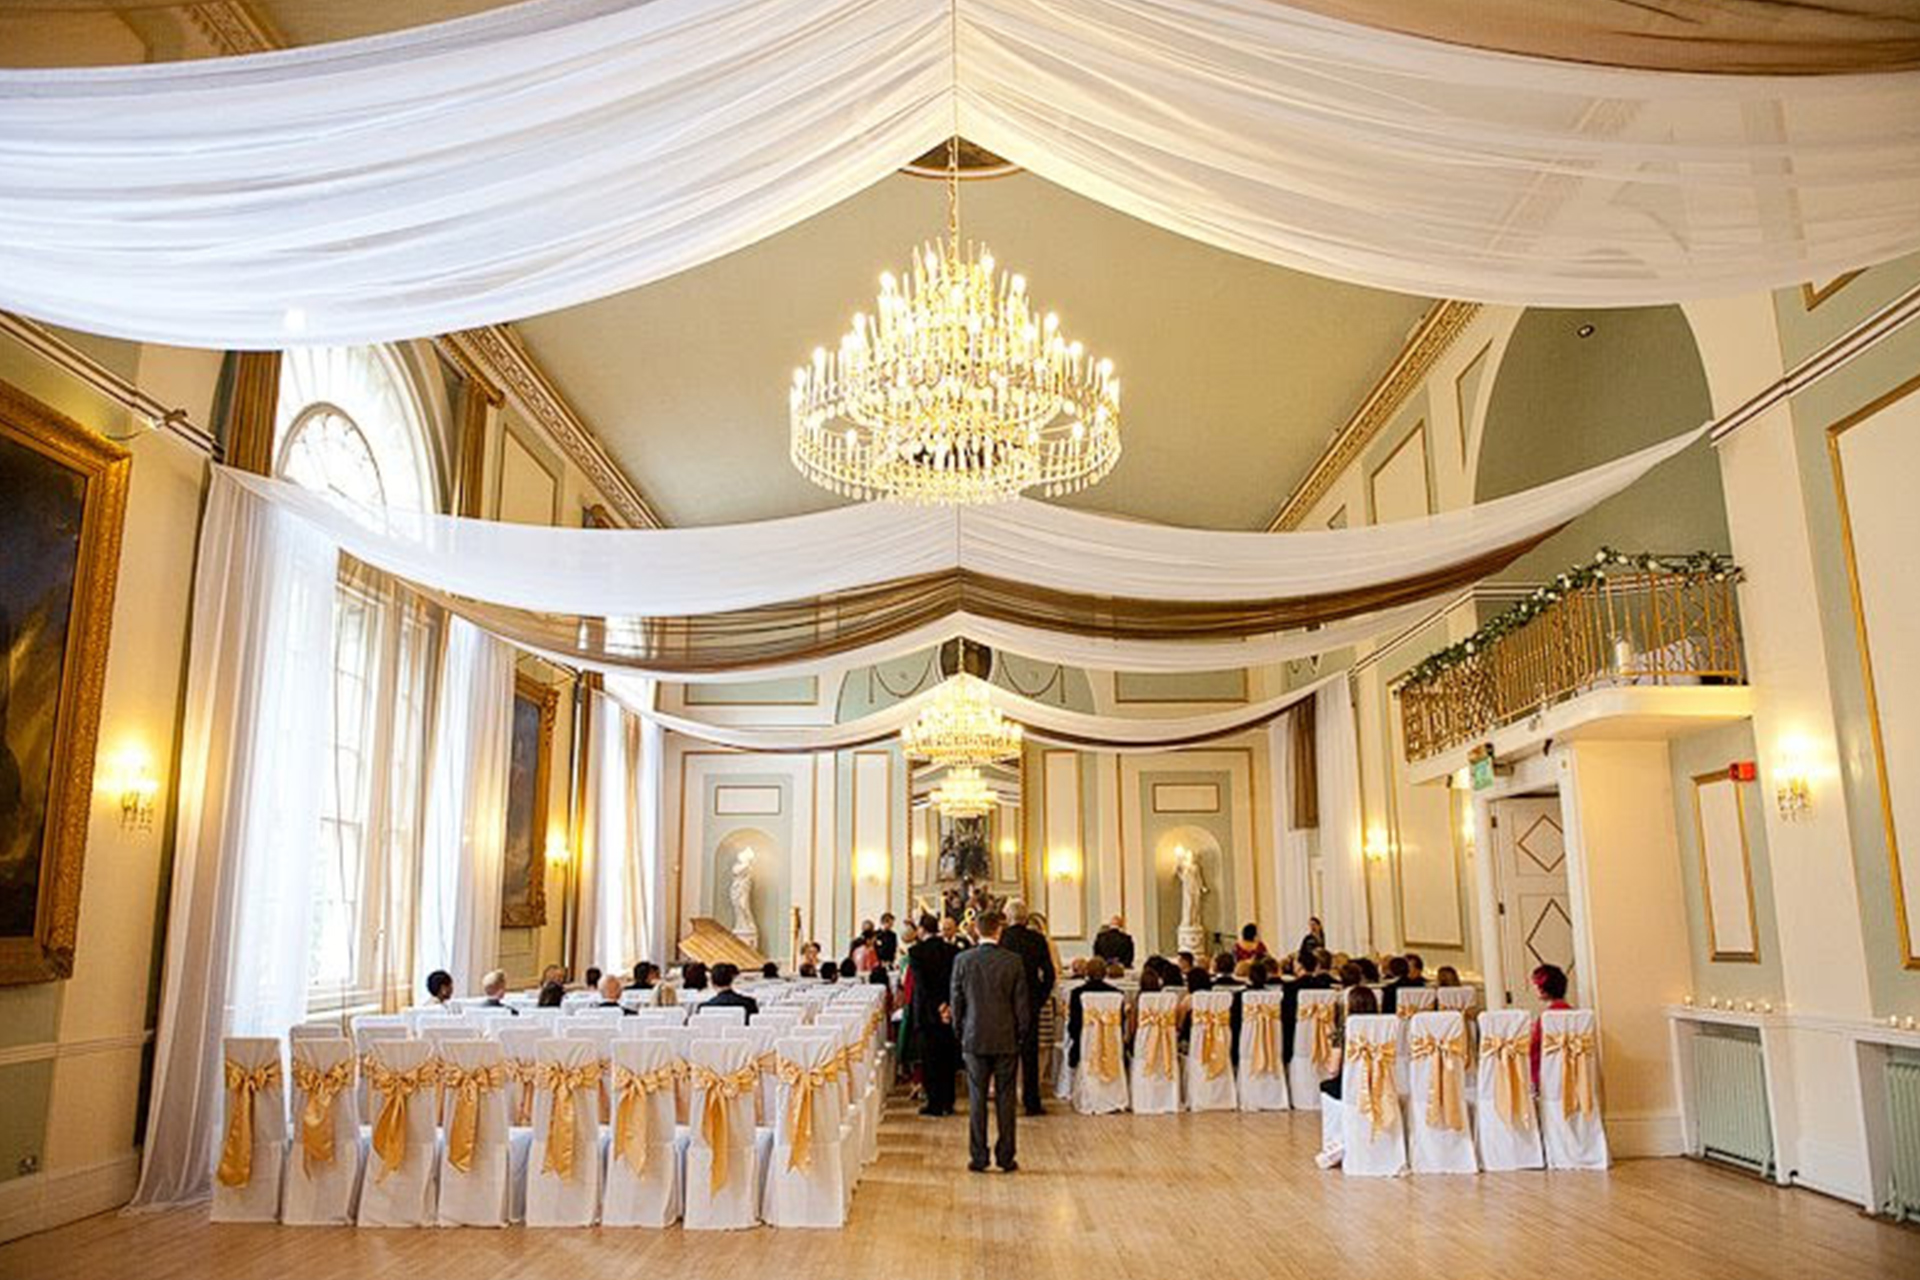 More Weddings white and gold wedding ceiling drapes